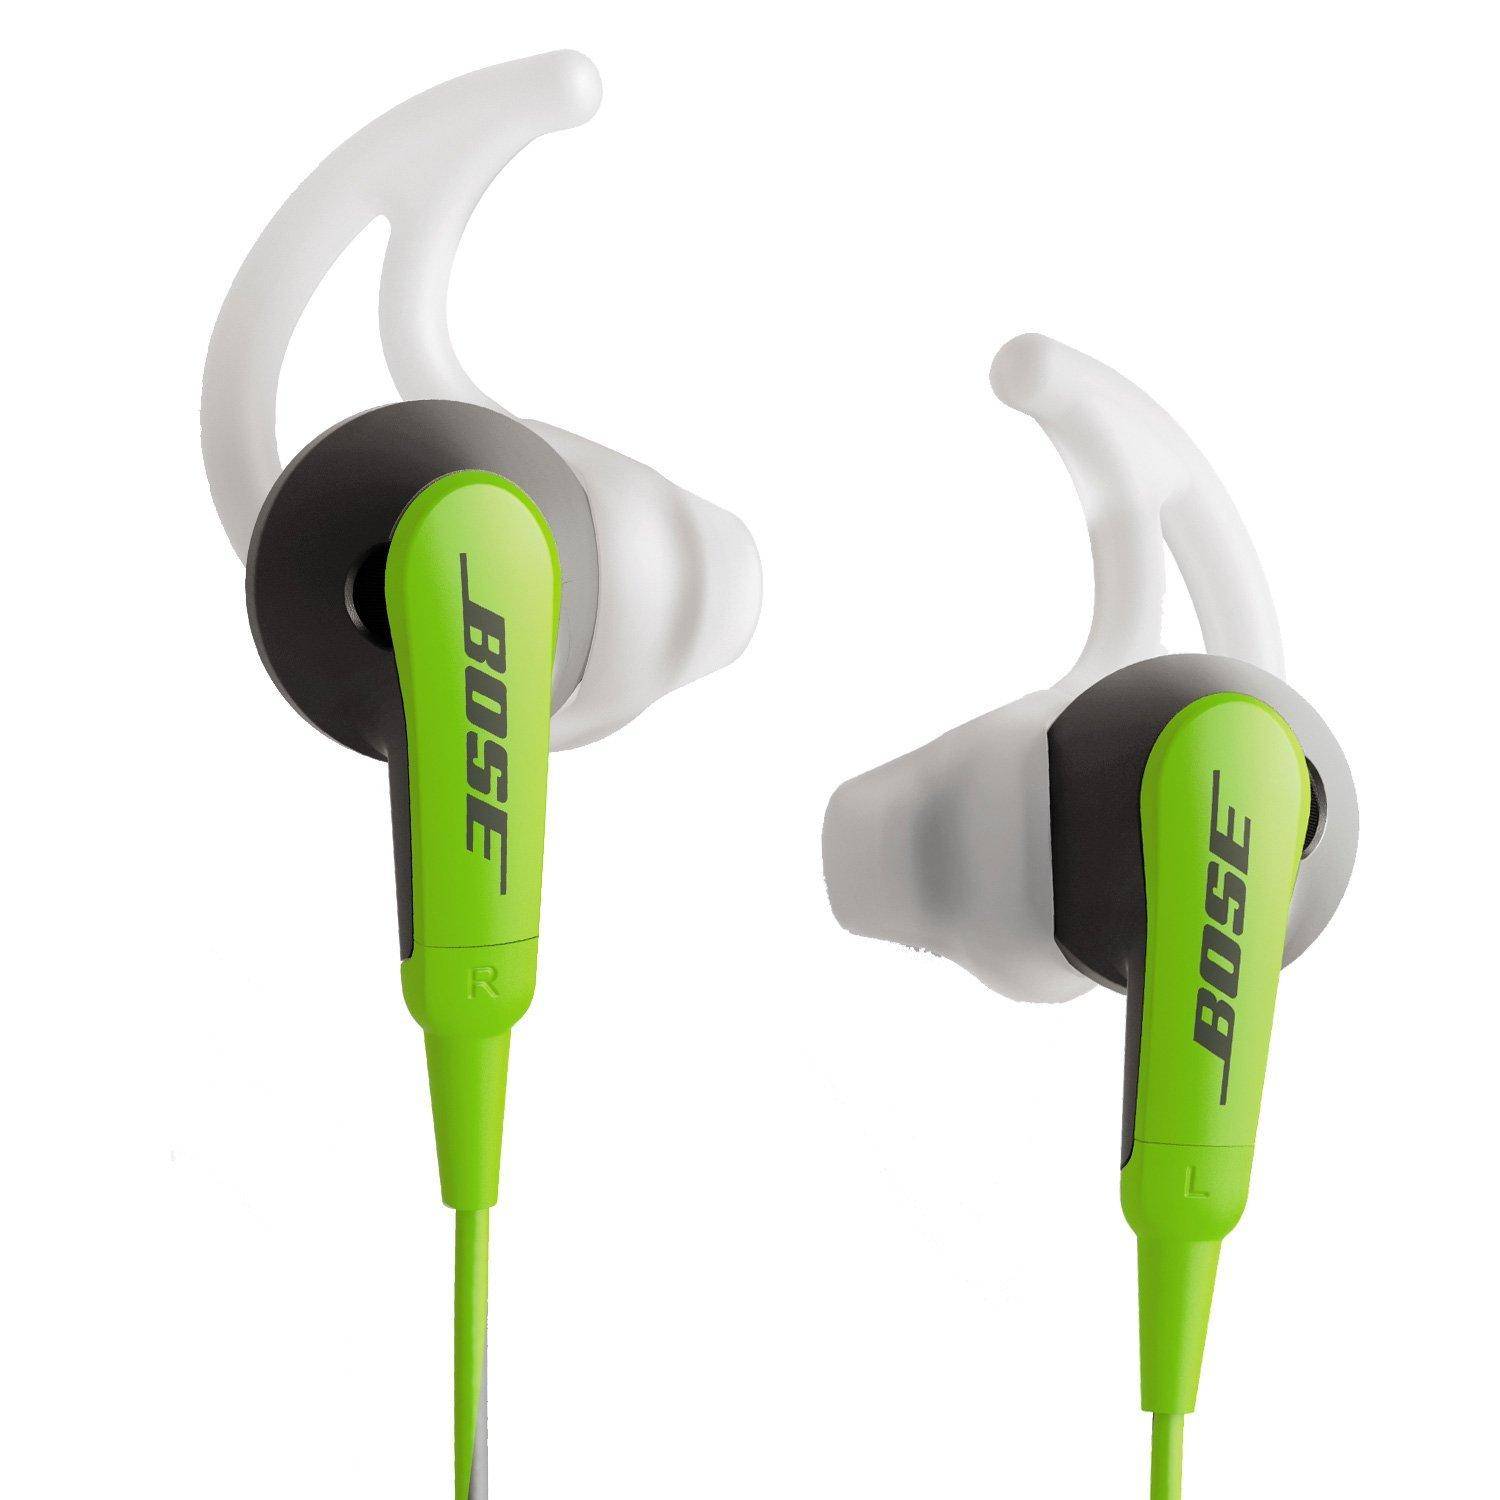 Bose SoundSport In-Ear Headphones for Samsung Galaxy Models, Green